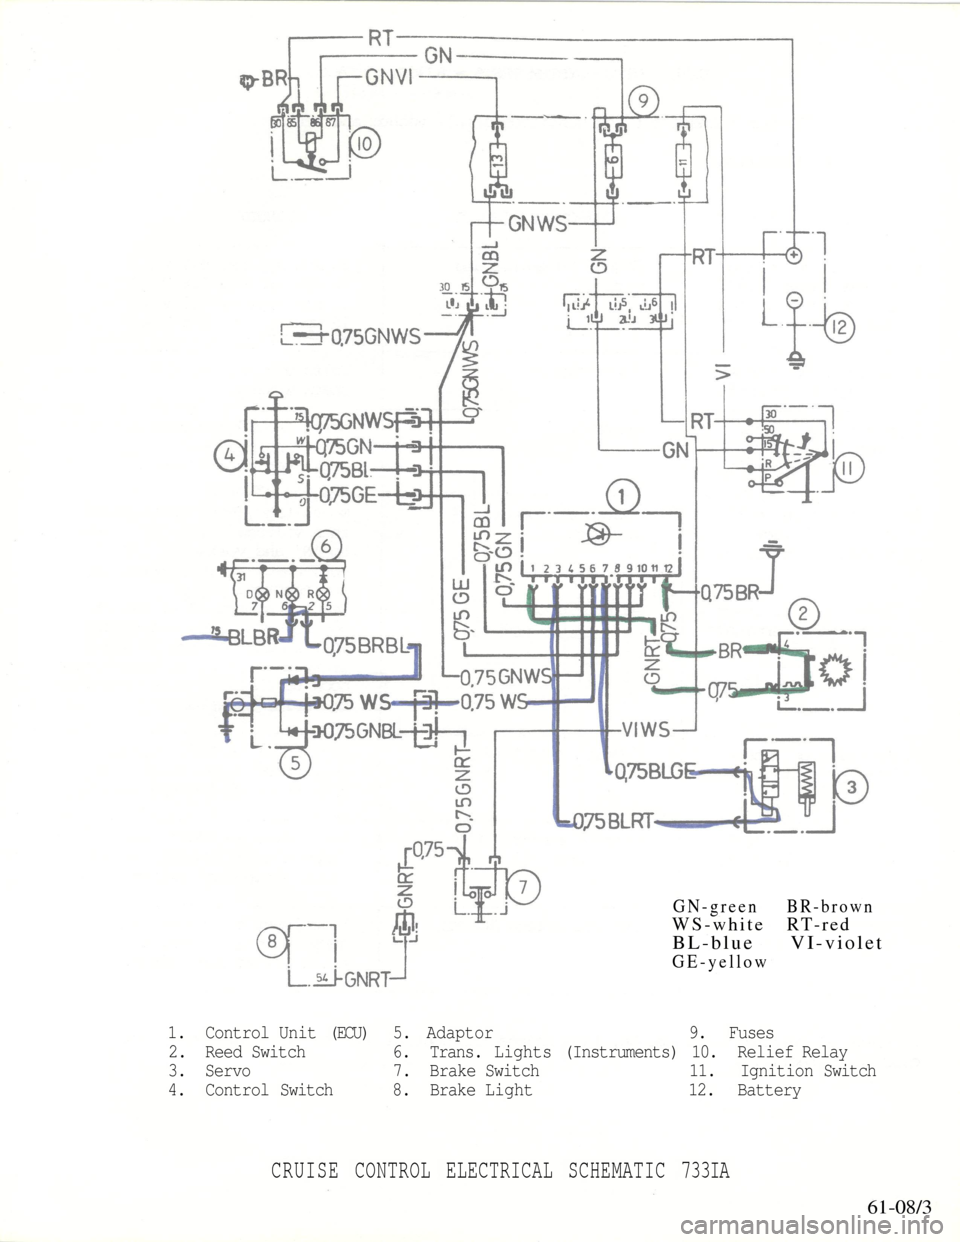 Bmw 5 Series 1987 E28 Cruise Control With Electric Acutator Engine Diagram